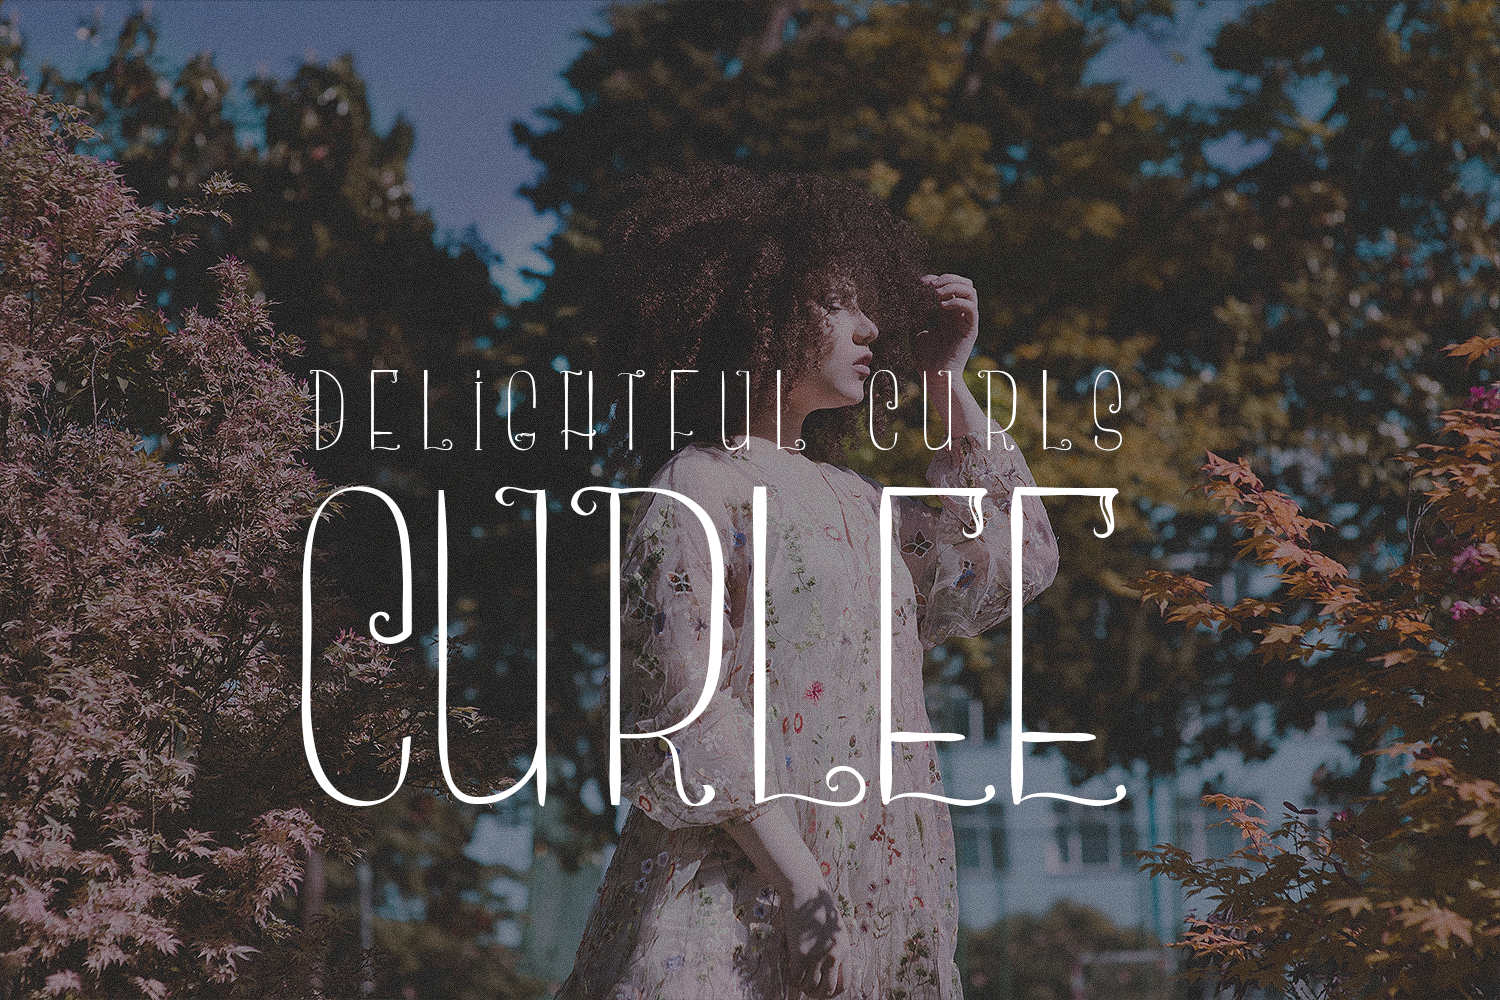 Curlee - A Thin and Curly Font example image 1